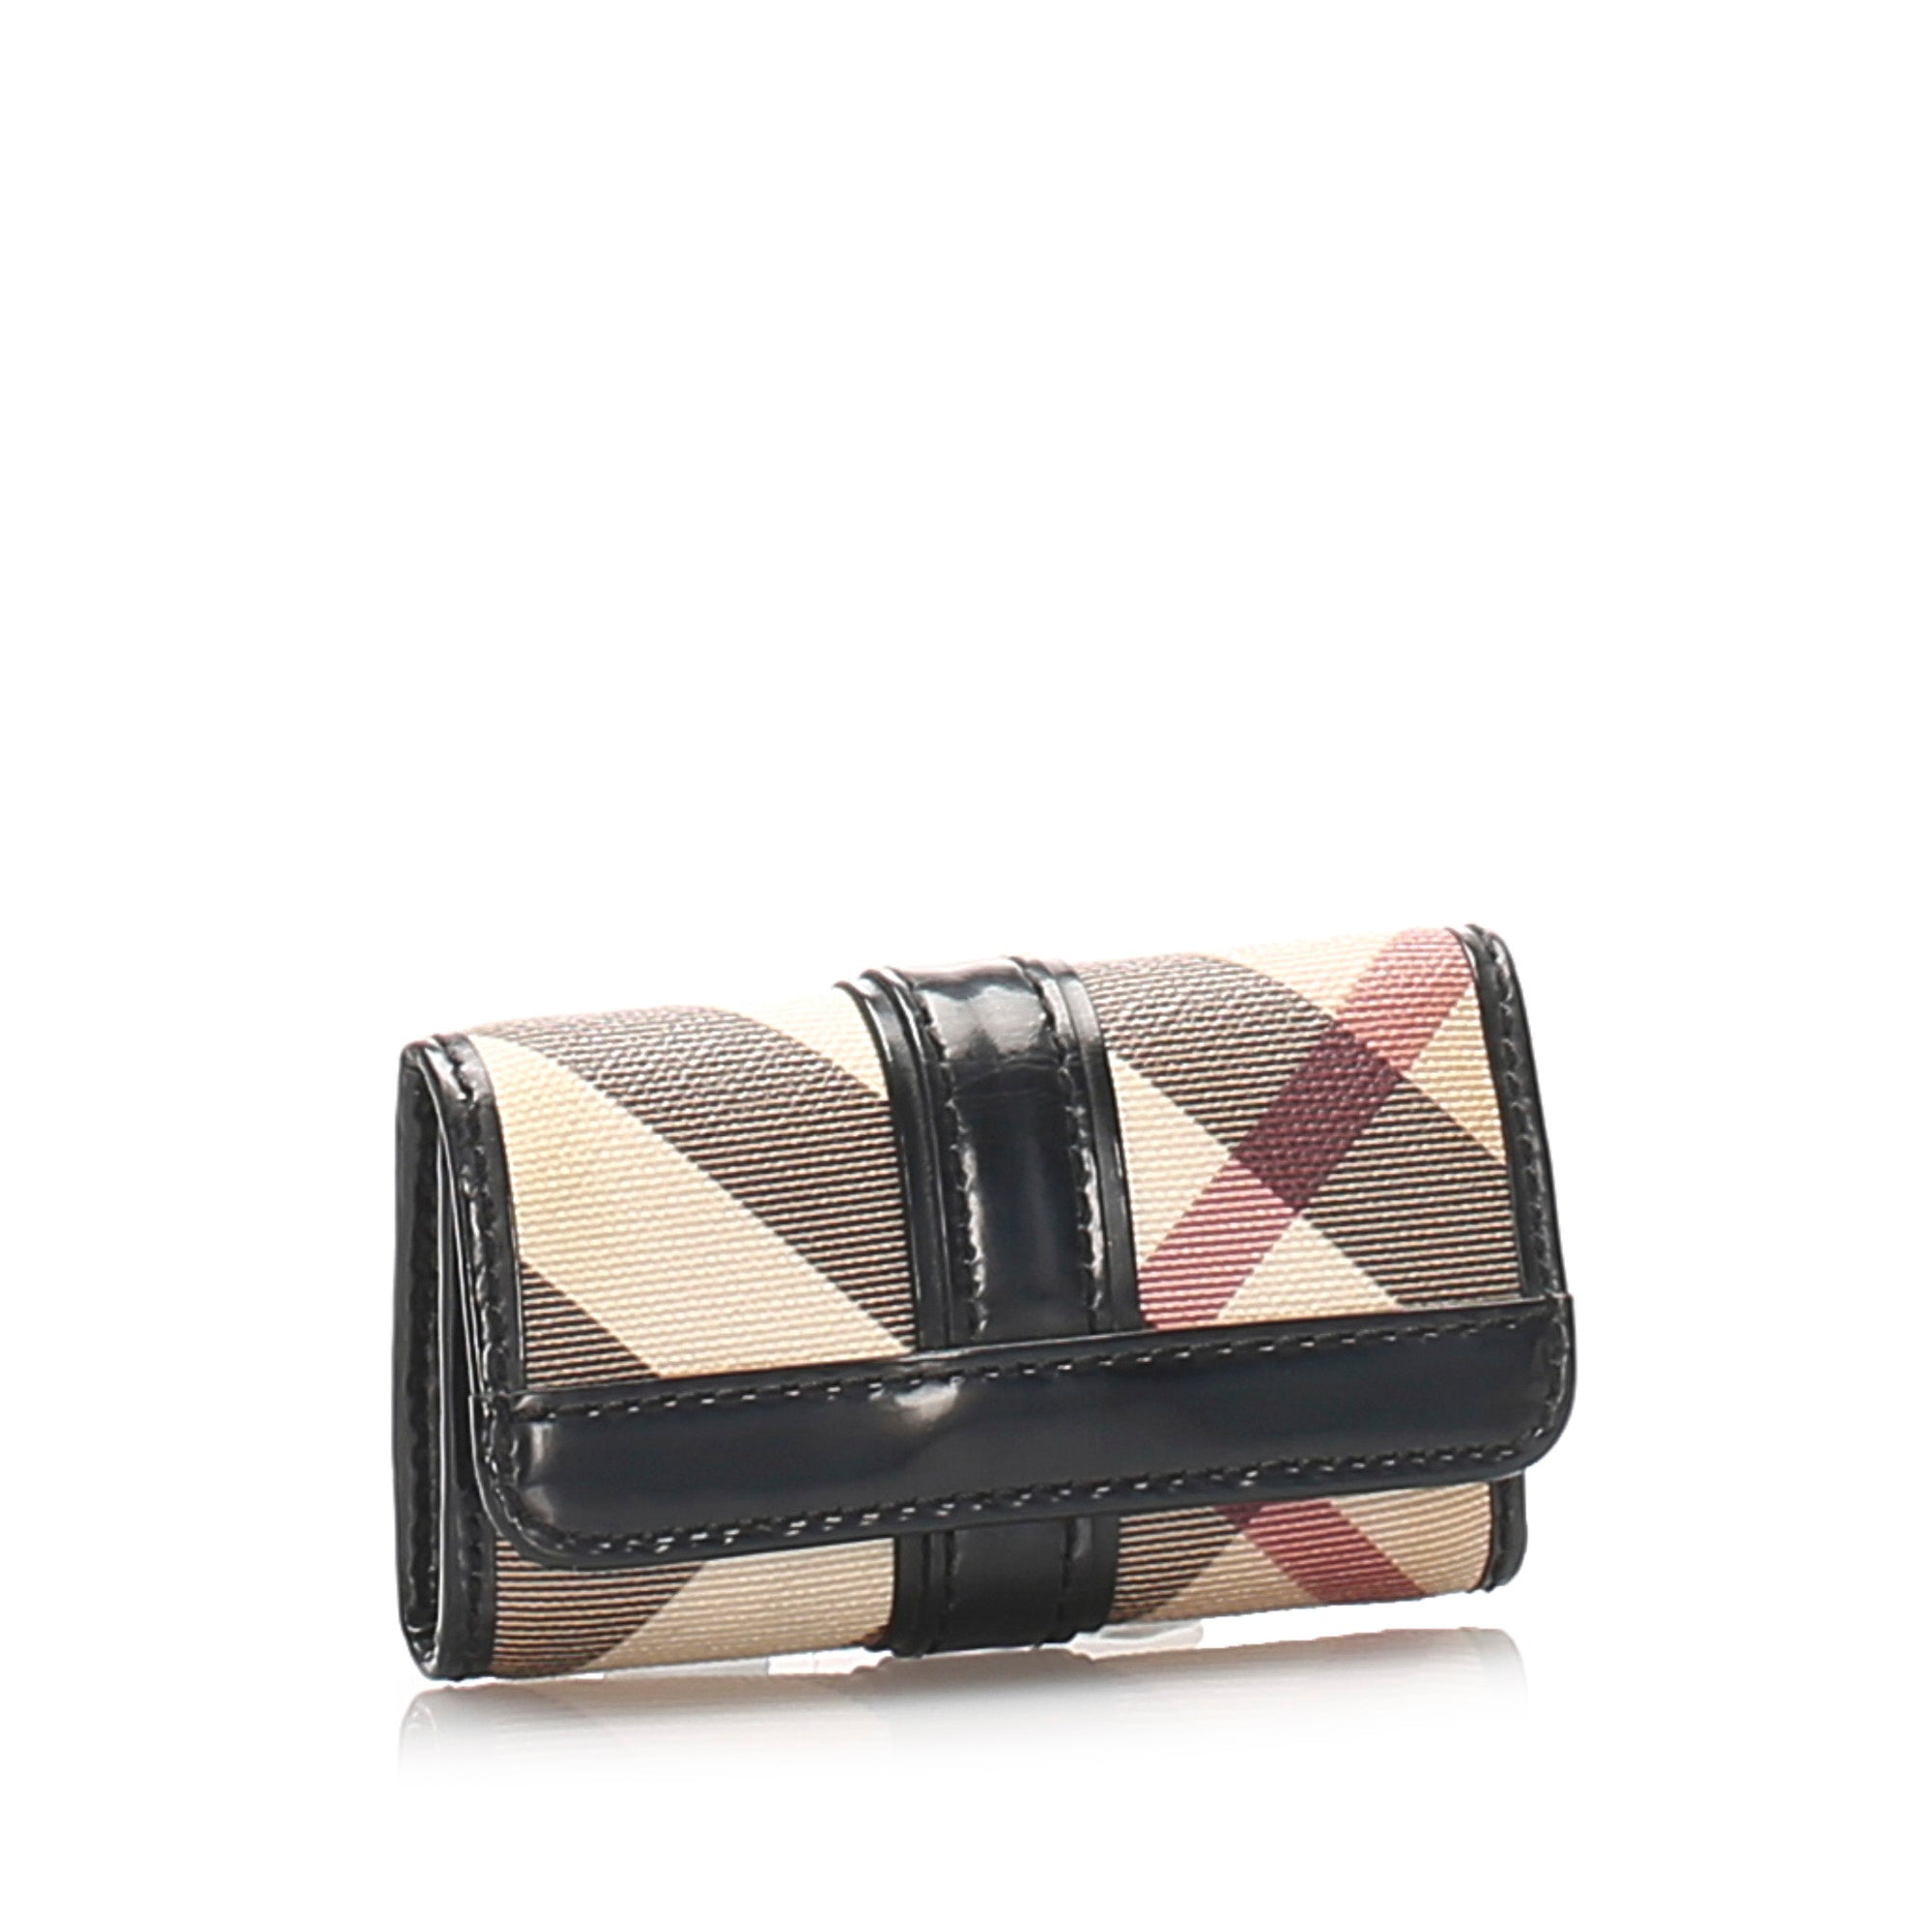 Burberry Multi Nova Check Key Holder